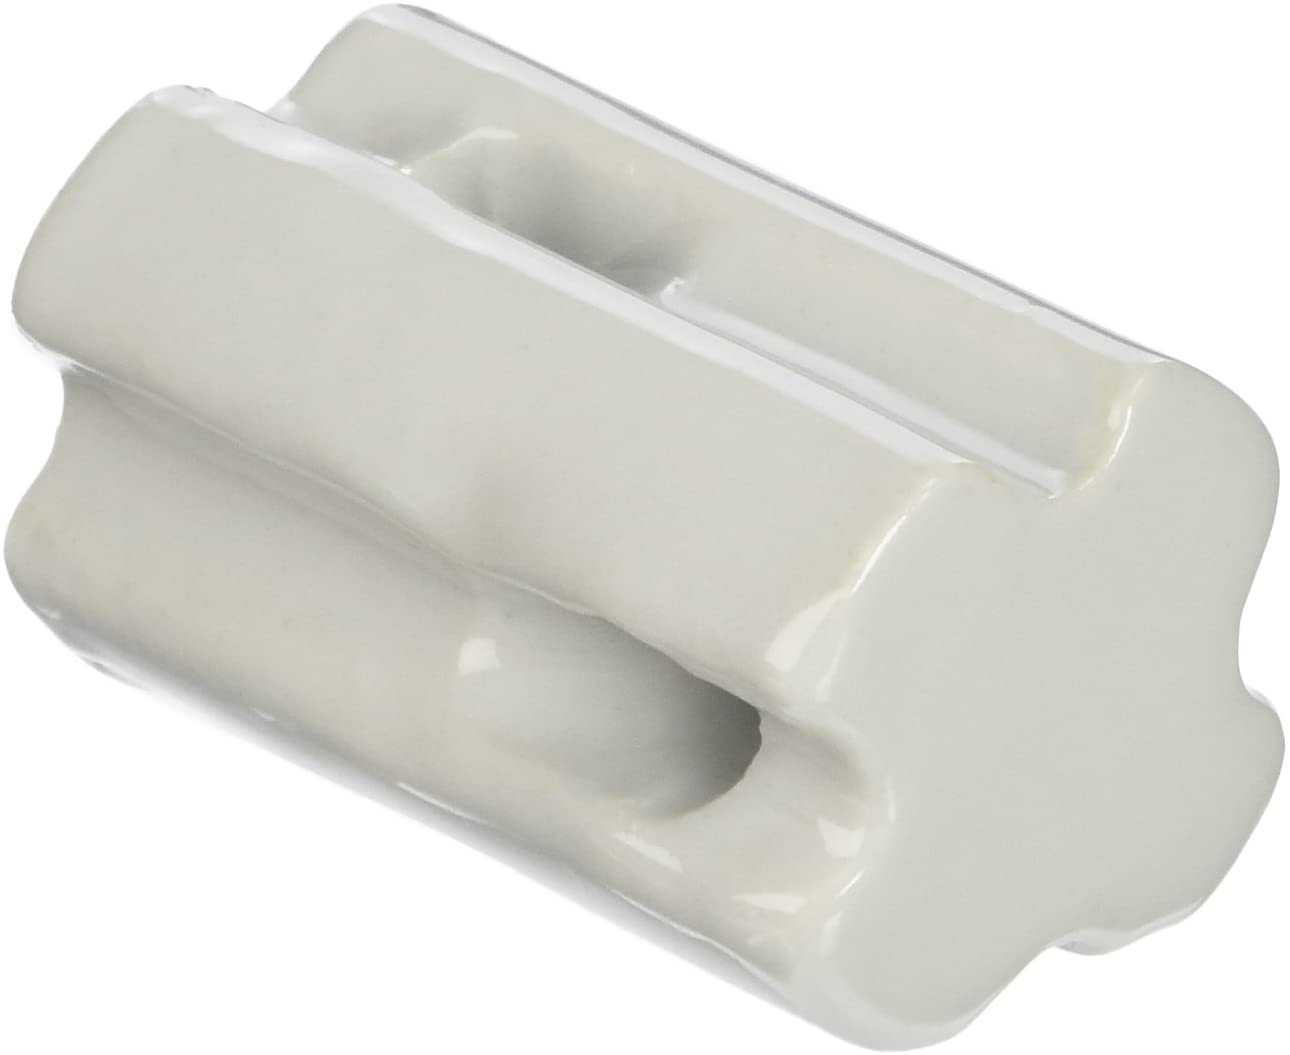 Gallagher G692034 10-Pack Porcelain Bullnose Electric Fence Insulator, White